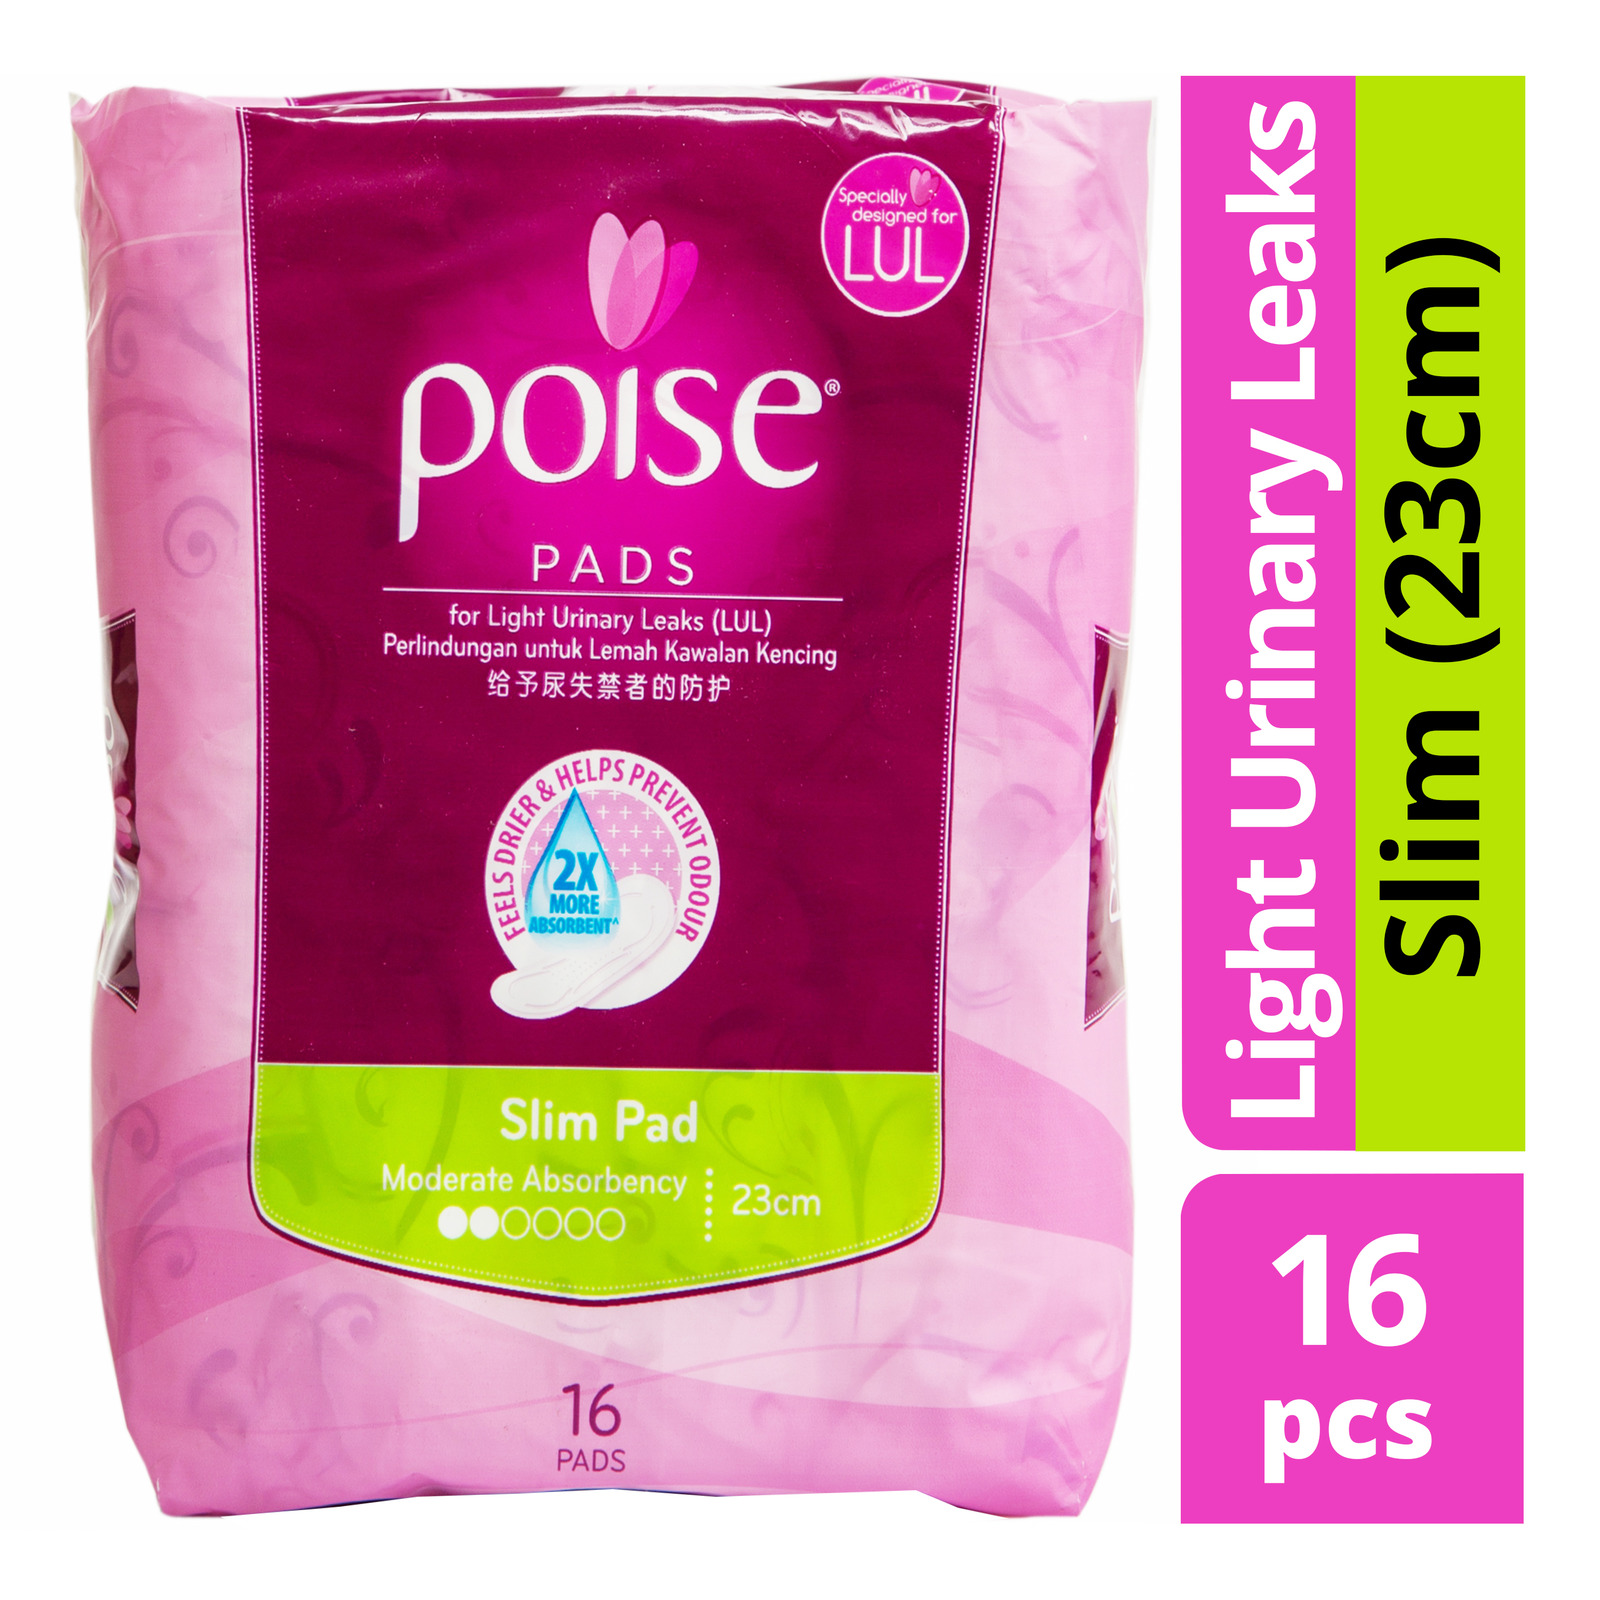 Poise Pads For Light Urinary Leaks - Slim (23cm)